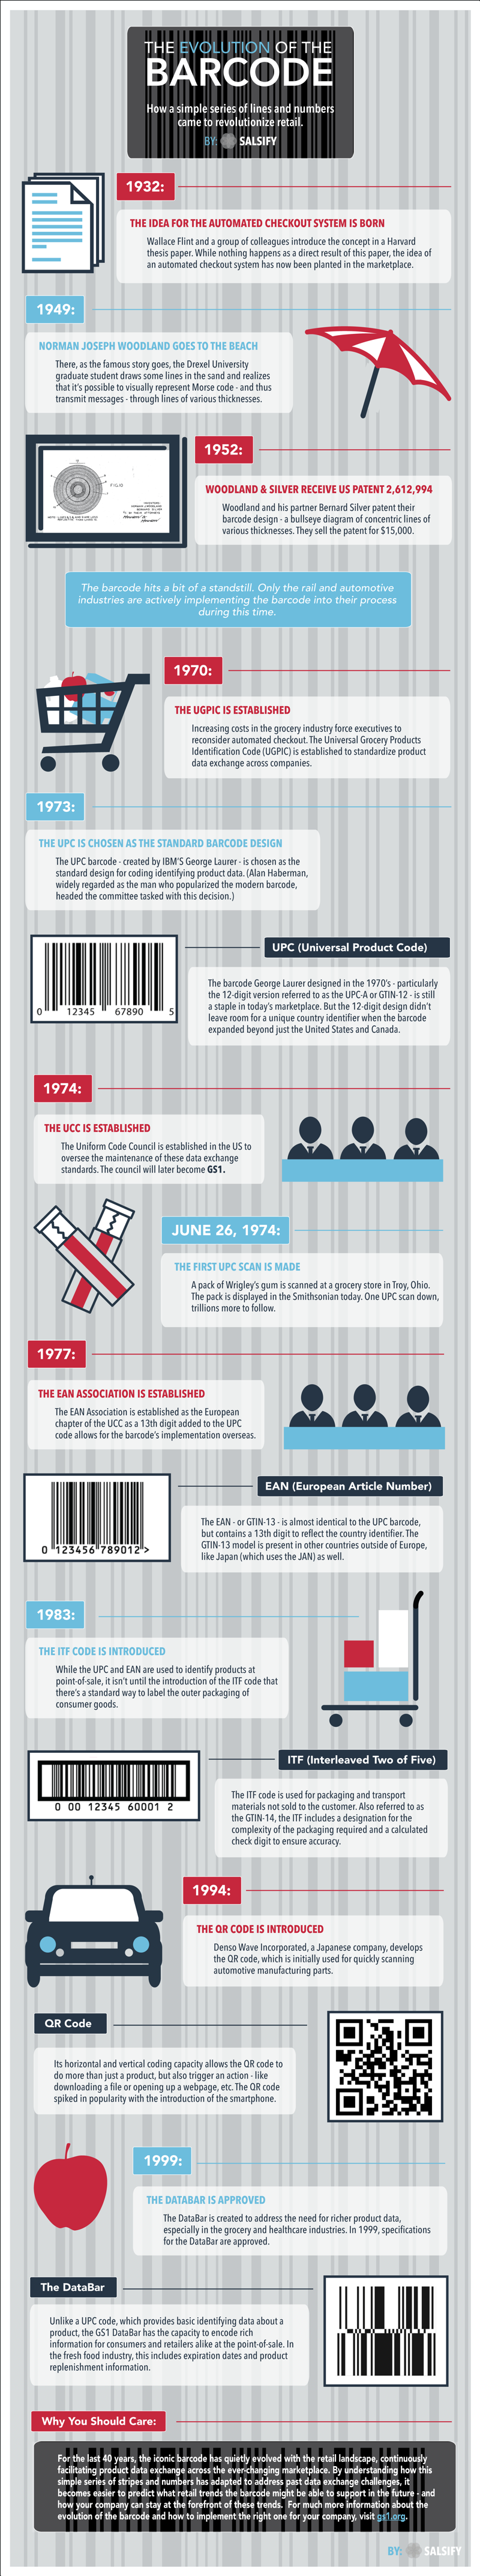 history-of-the-barcode-infographic